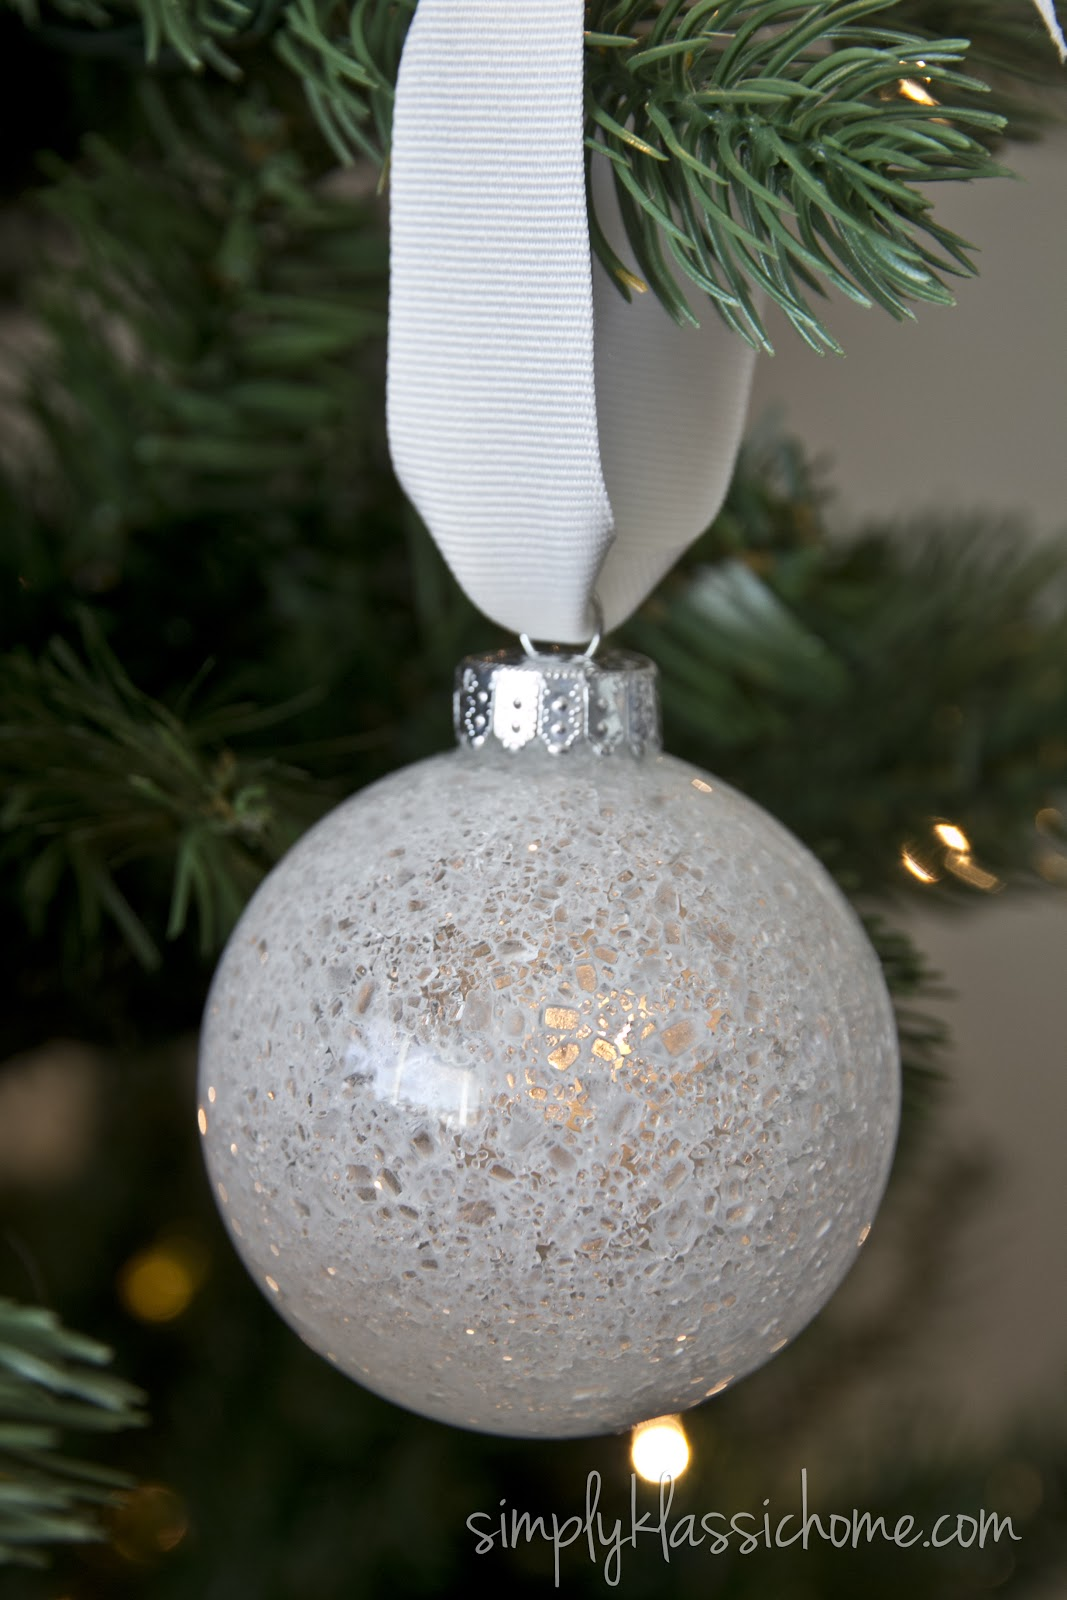 Ten handmade ornaments in under an hour